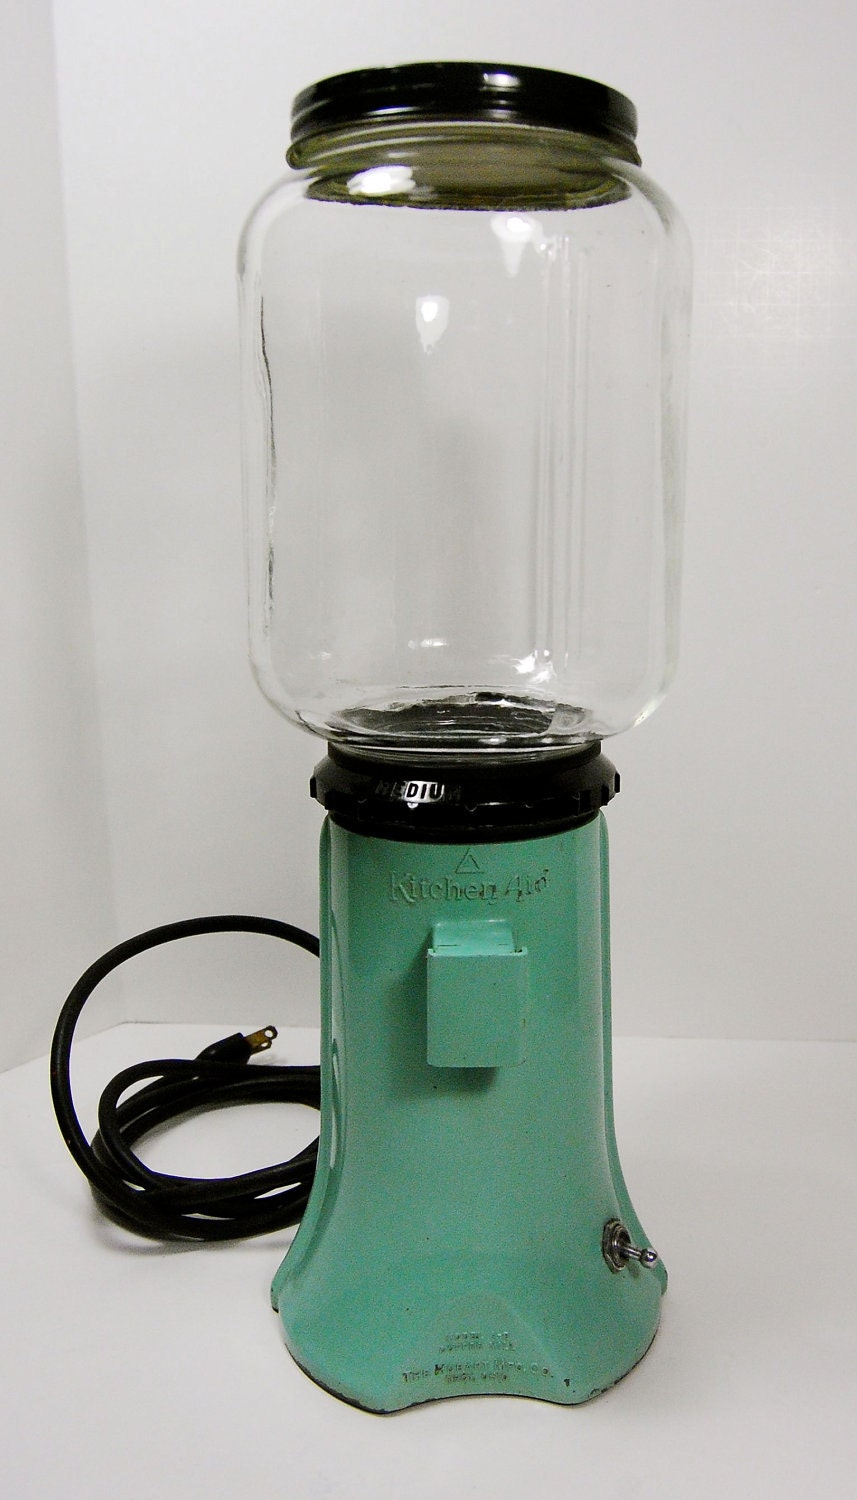 Kitchen Aid Mixer Kitchenaid A-9 Electric Burr Coffee Grinder. Rare Mint Green